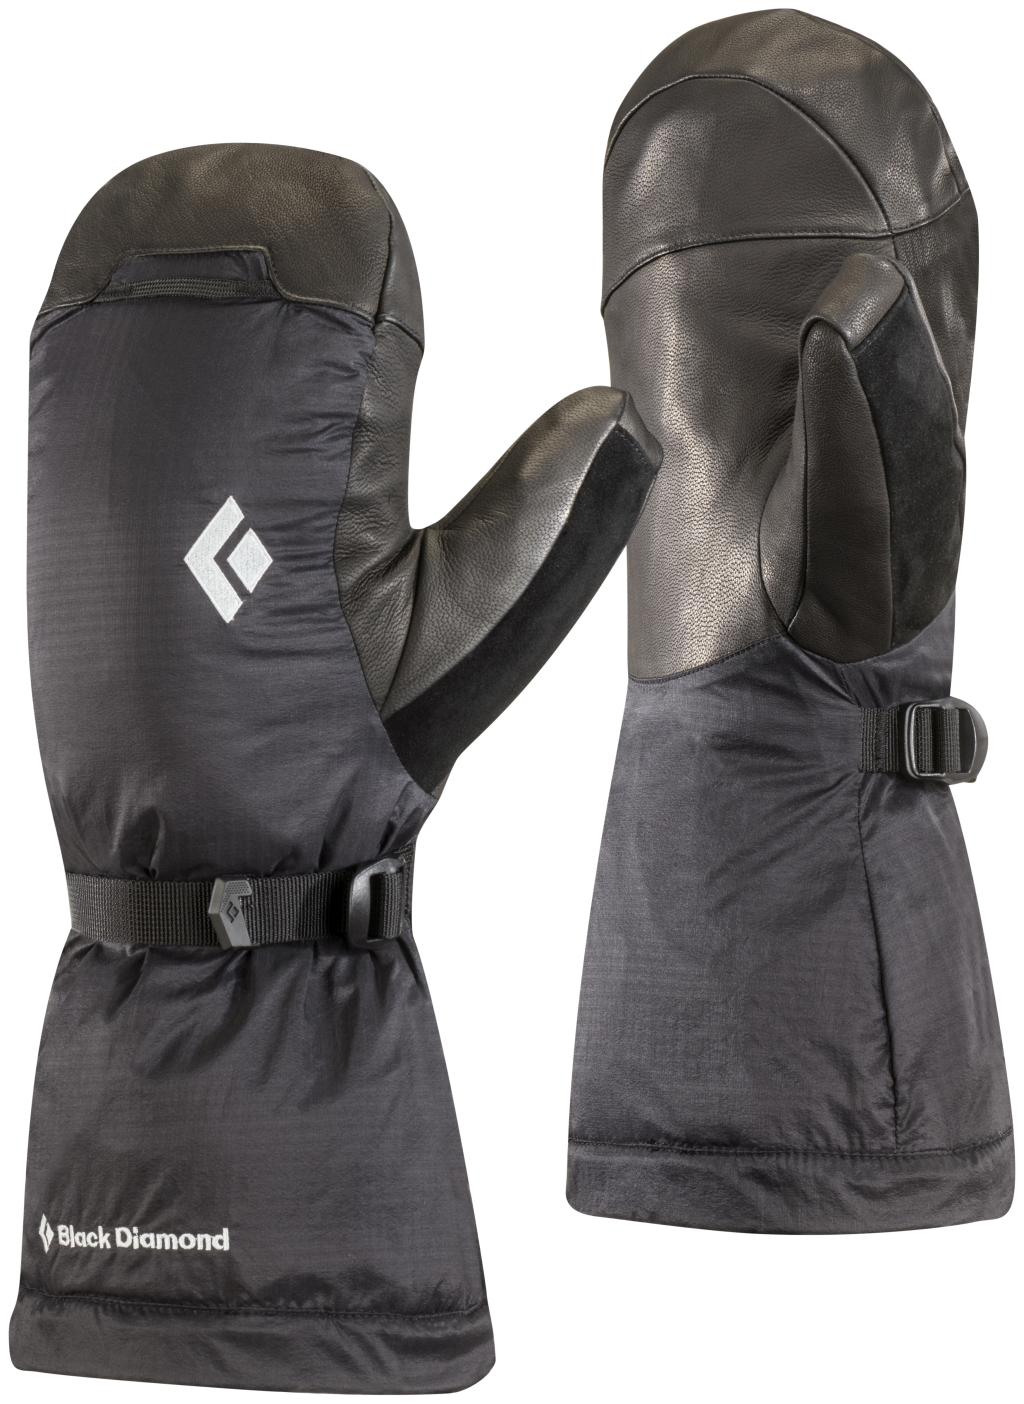 Black Diamond Absolute Mitts Black-30